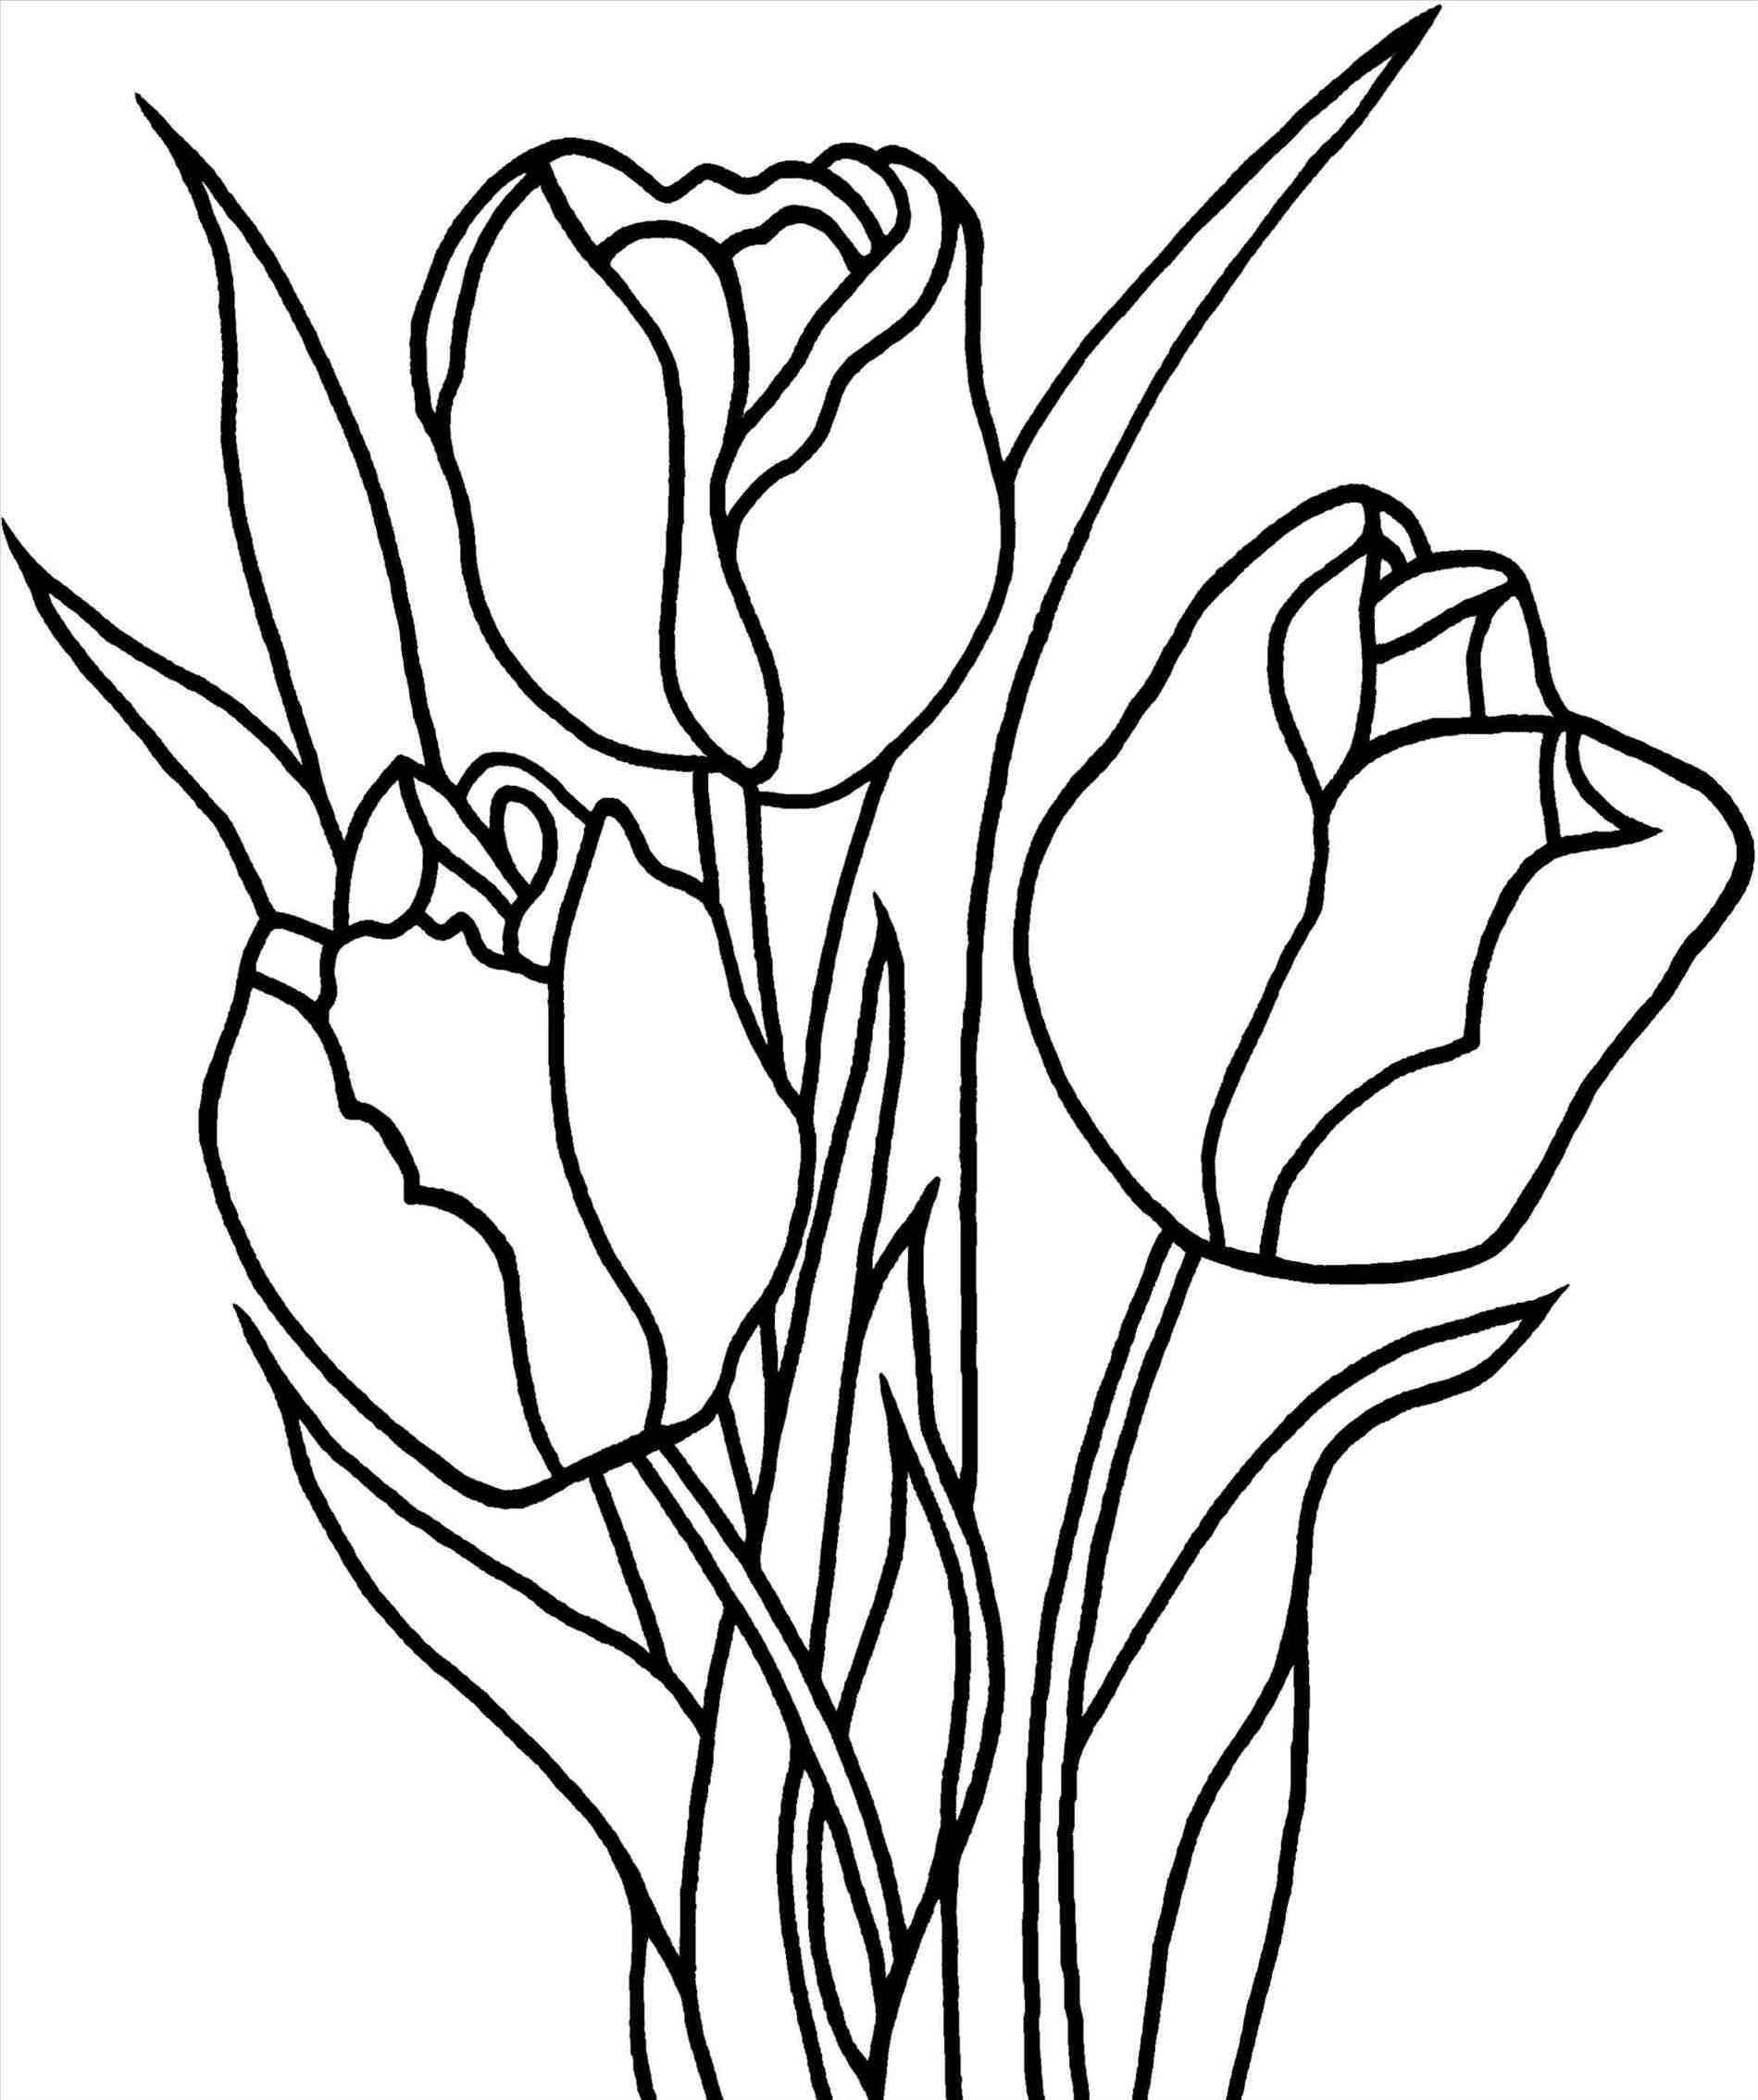 drawings of tulips tulip drawing how to draw spring tulips step by step tulips drawings of